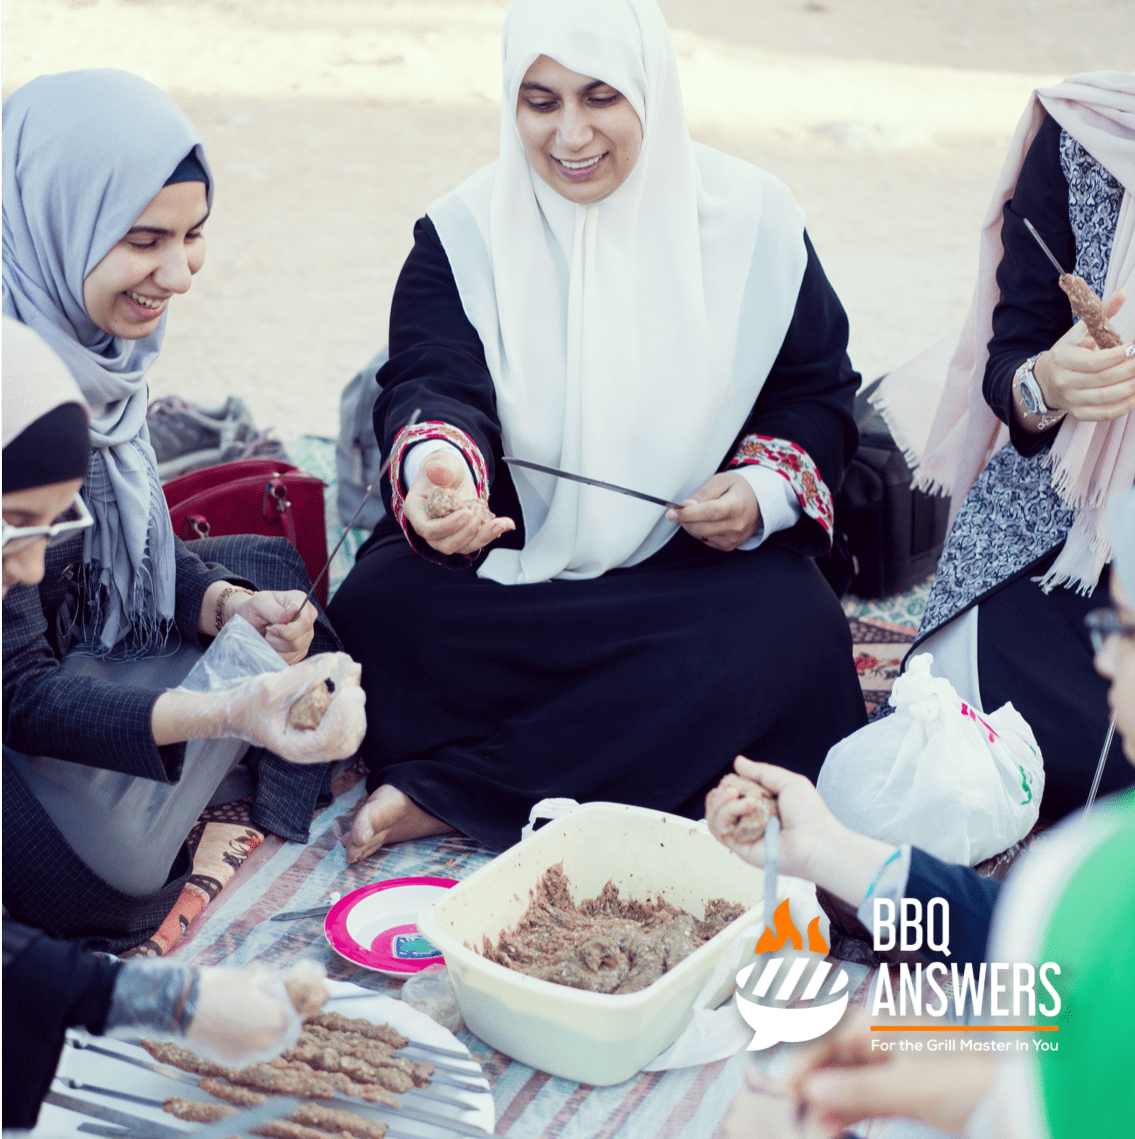 BBQs in the Middle East   Halal BBQ   BBQanswers